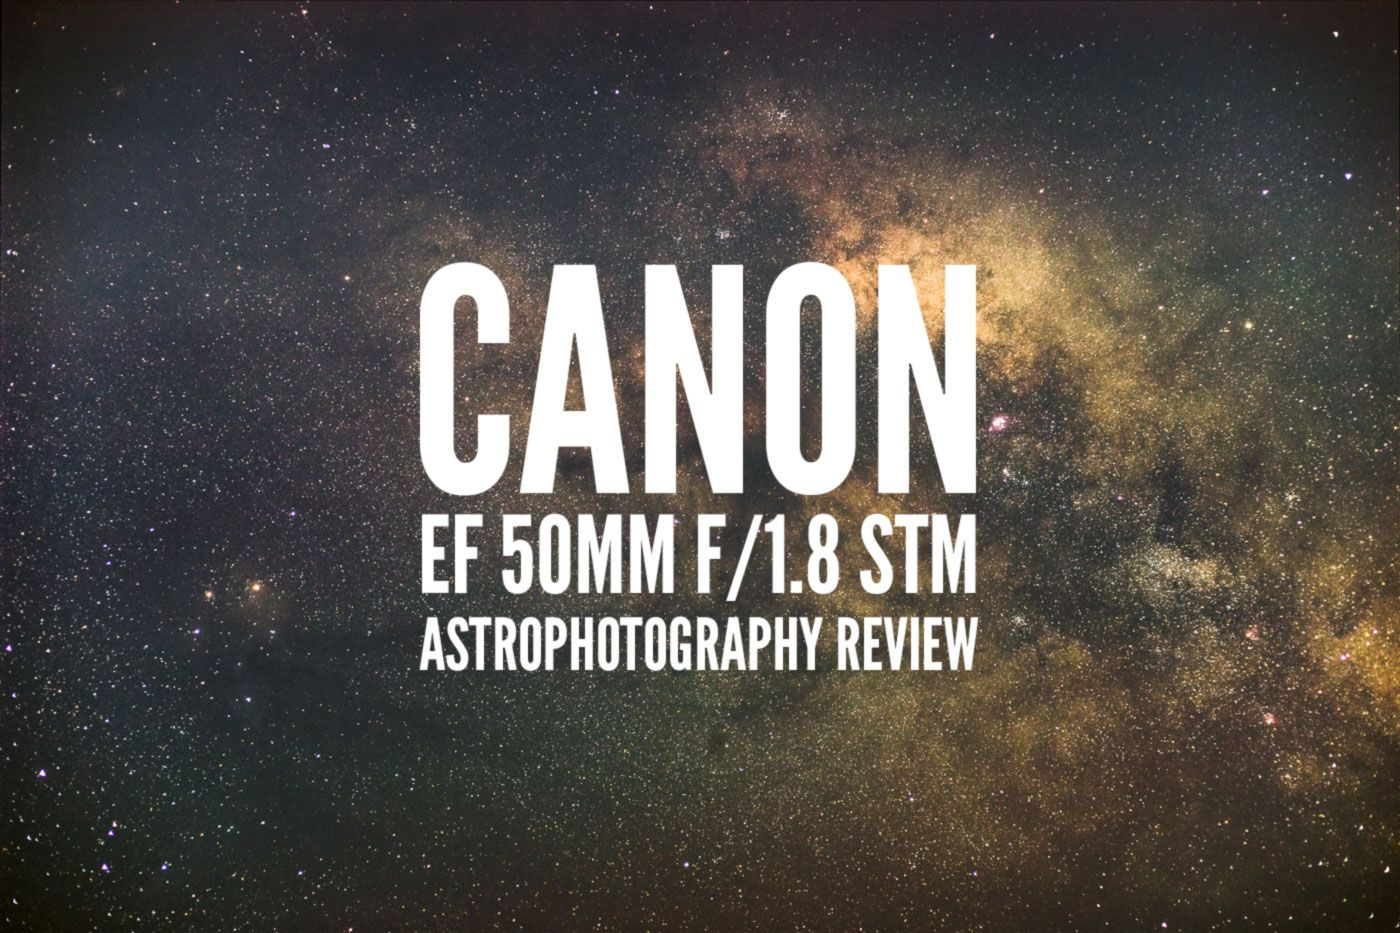 Canon Ef 50mm F 1 8 Stm Astrophotography Review Astrophotography Canon Ef Astrophotography Tutorial